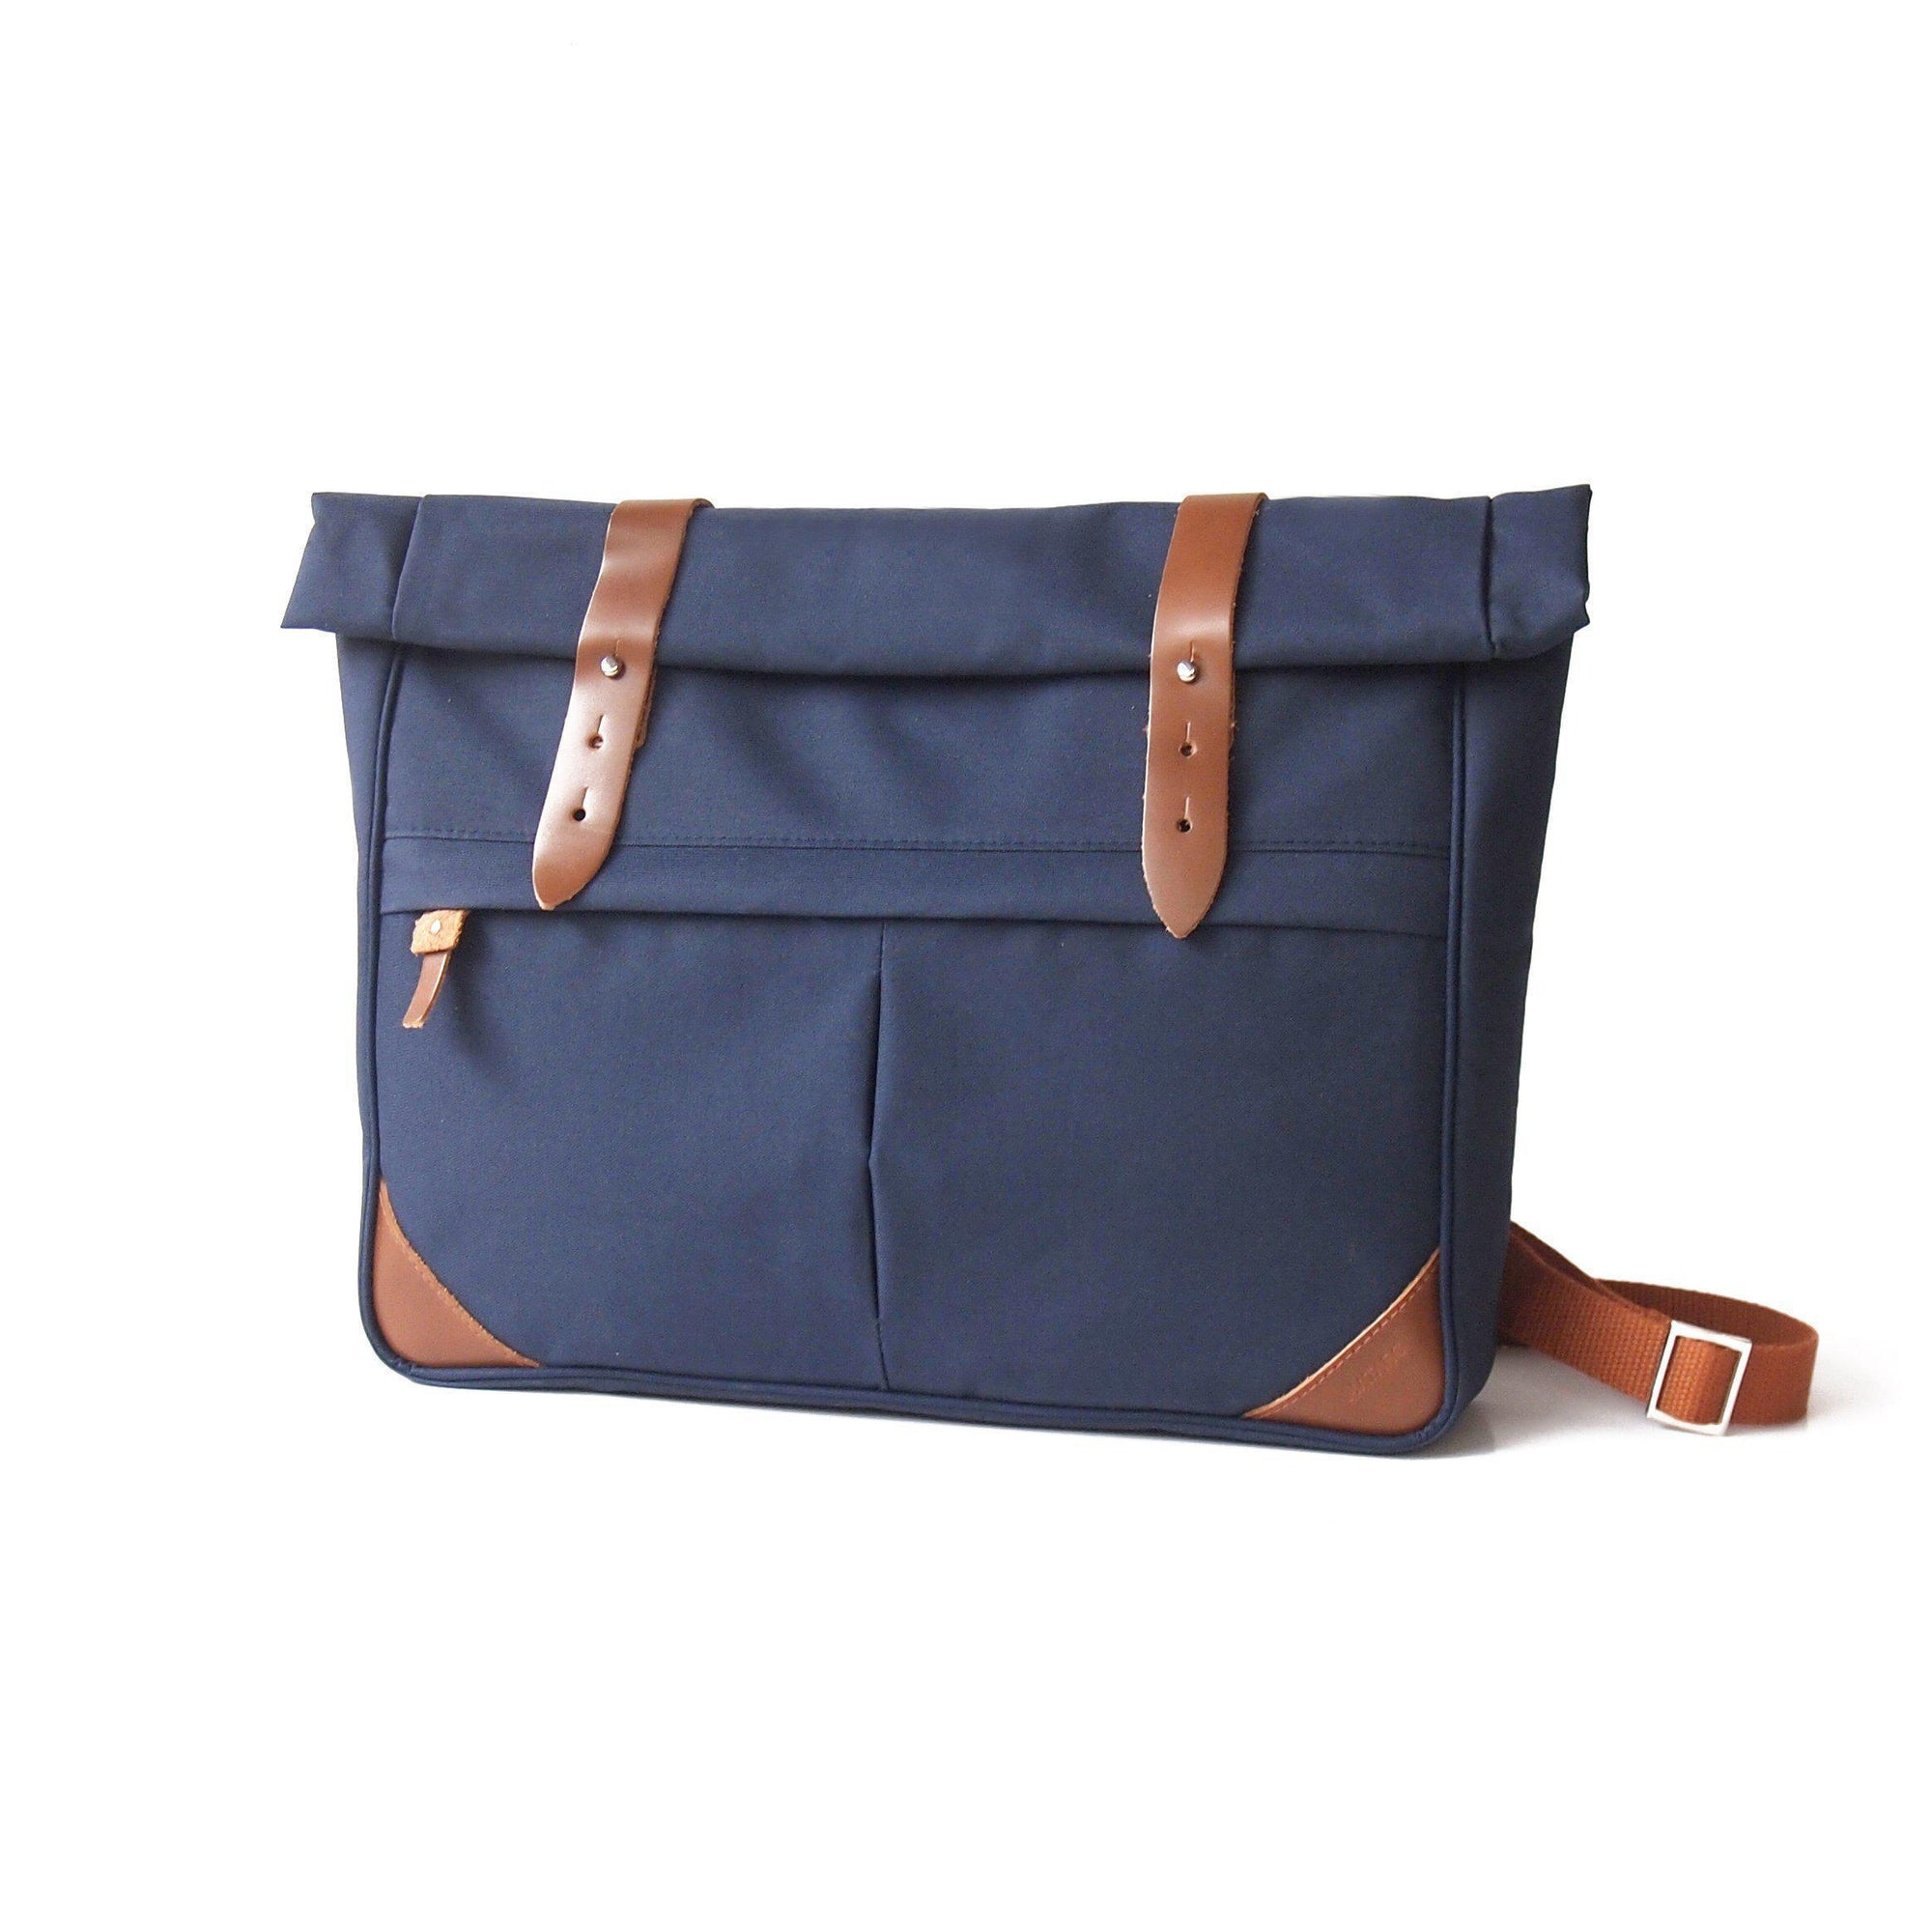 Mat Archer Merge Messenger Bag with Leather Detail